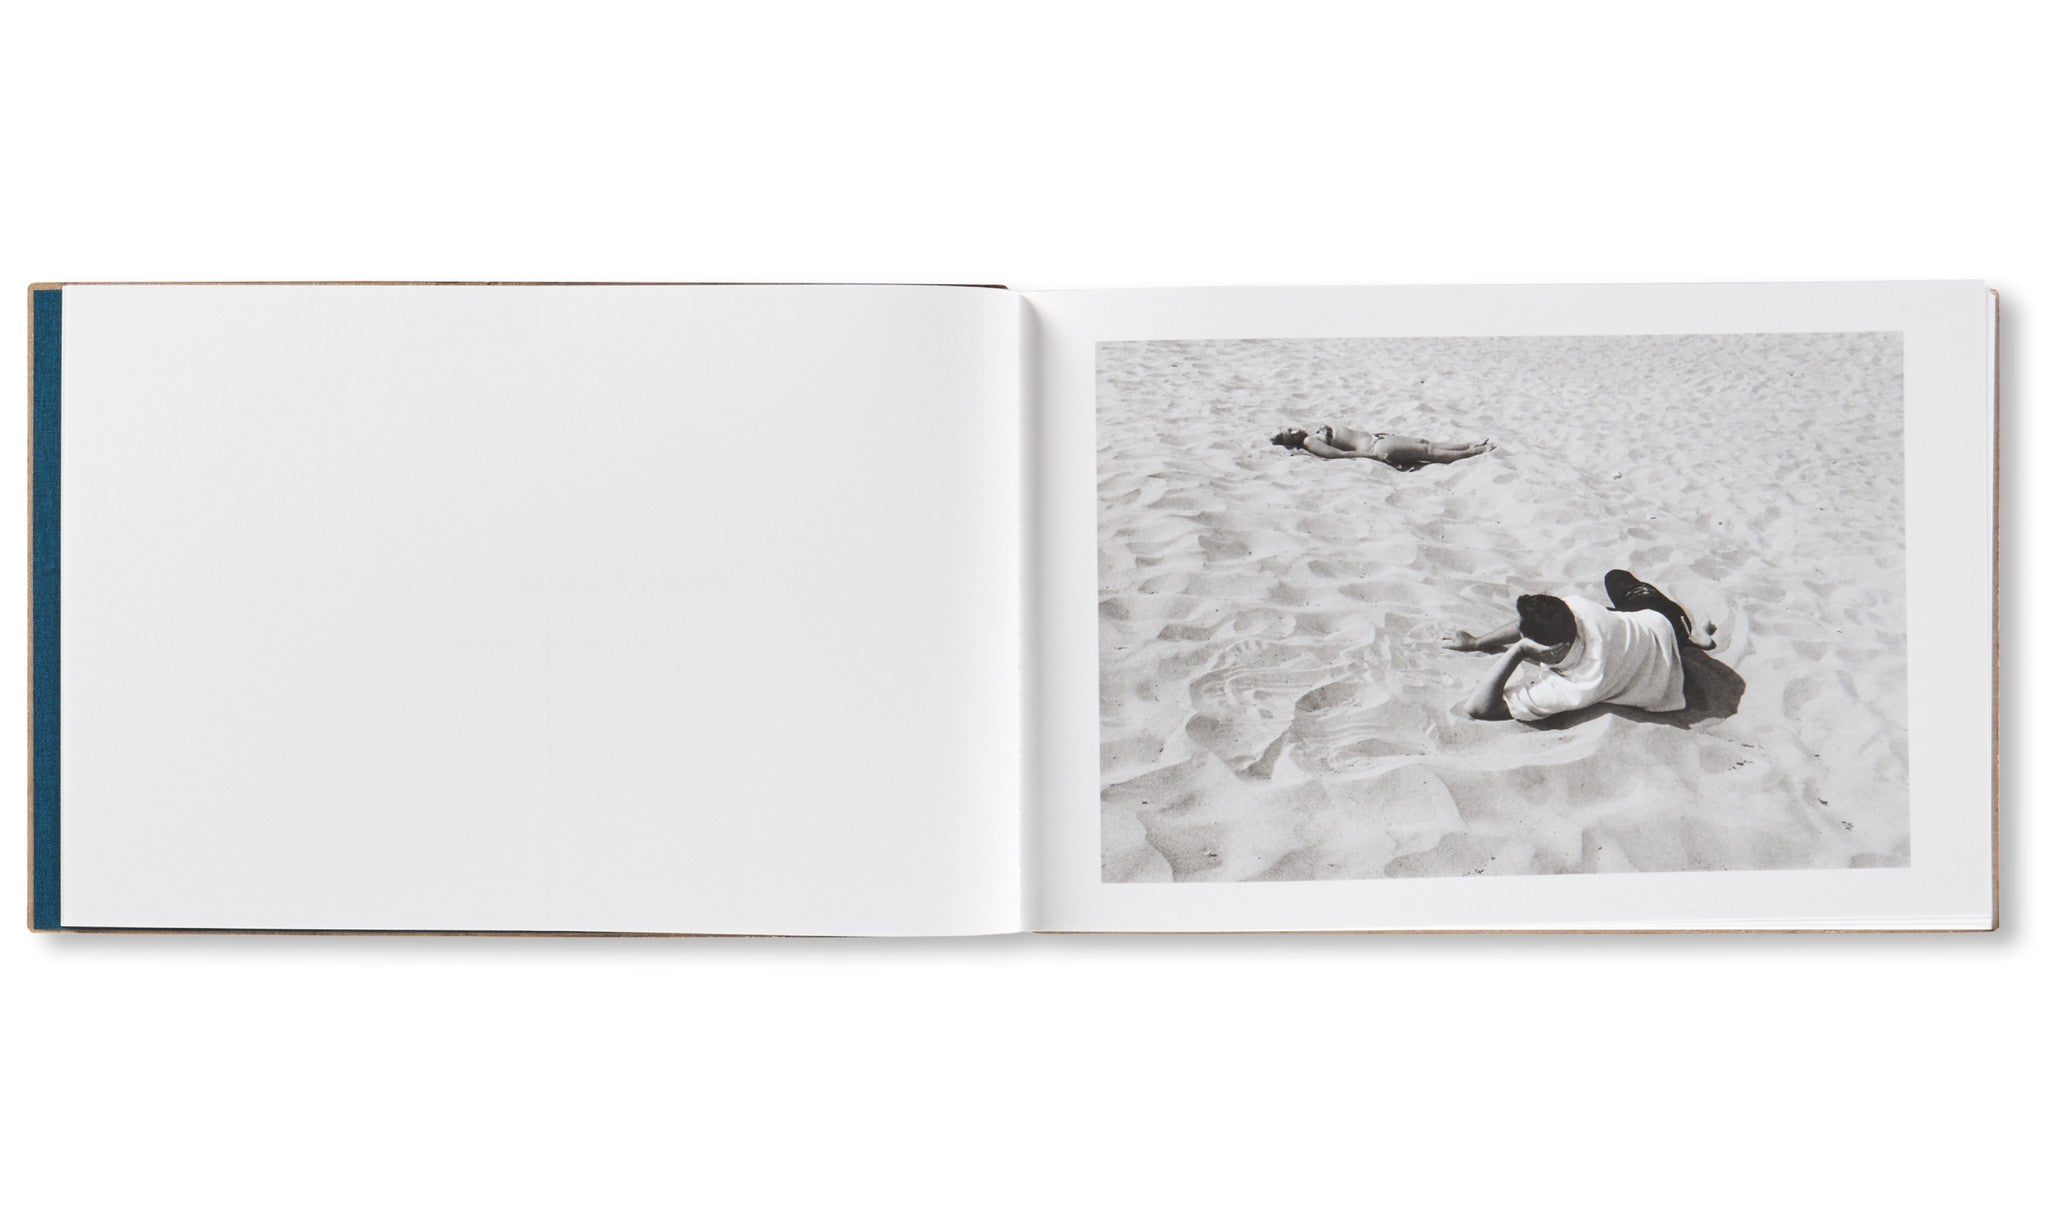 BEACH PICTURES, 1969-70 by Anthony Hernandez [SIGNED]